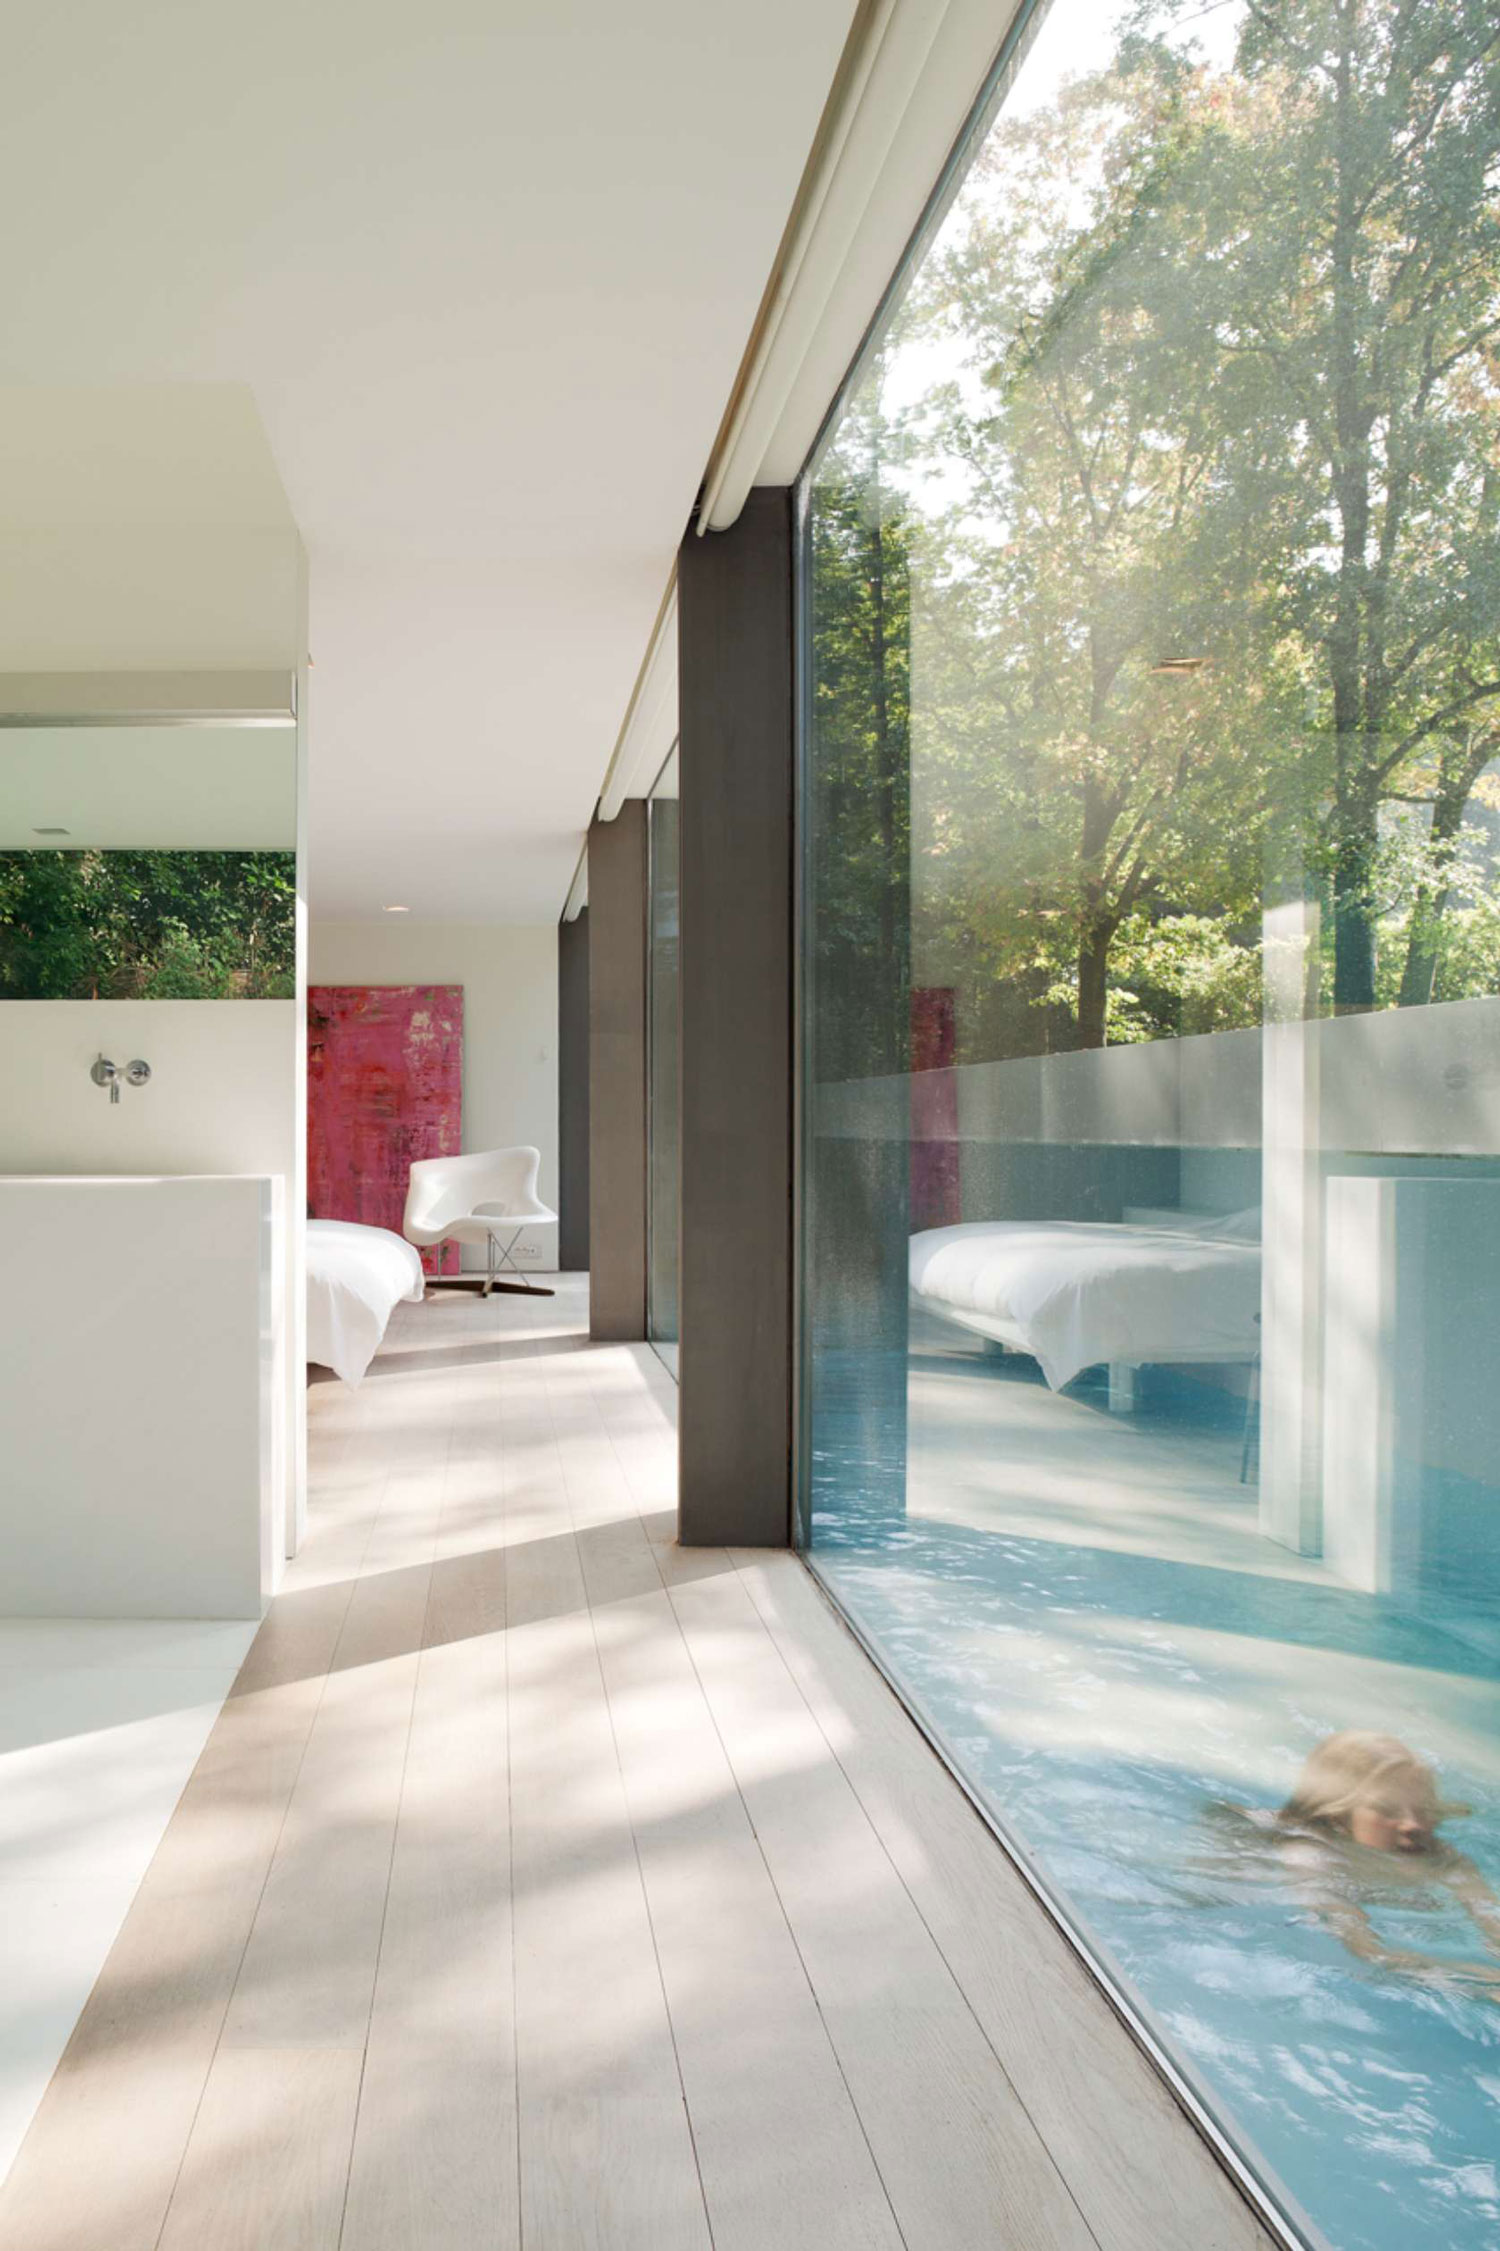 Villa Roces Belgium by Govaert and Vanhoutte | Yellowtrace